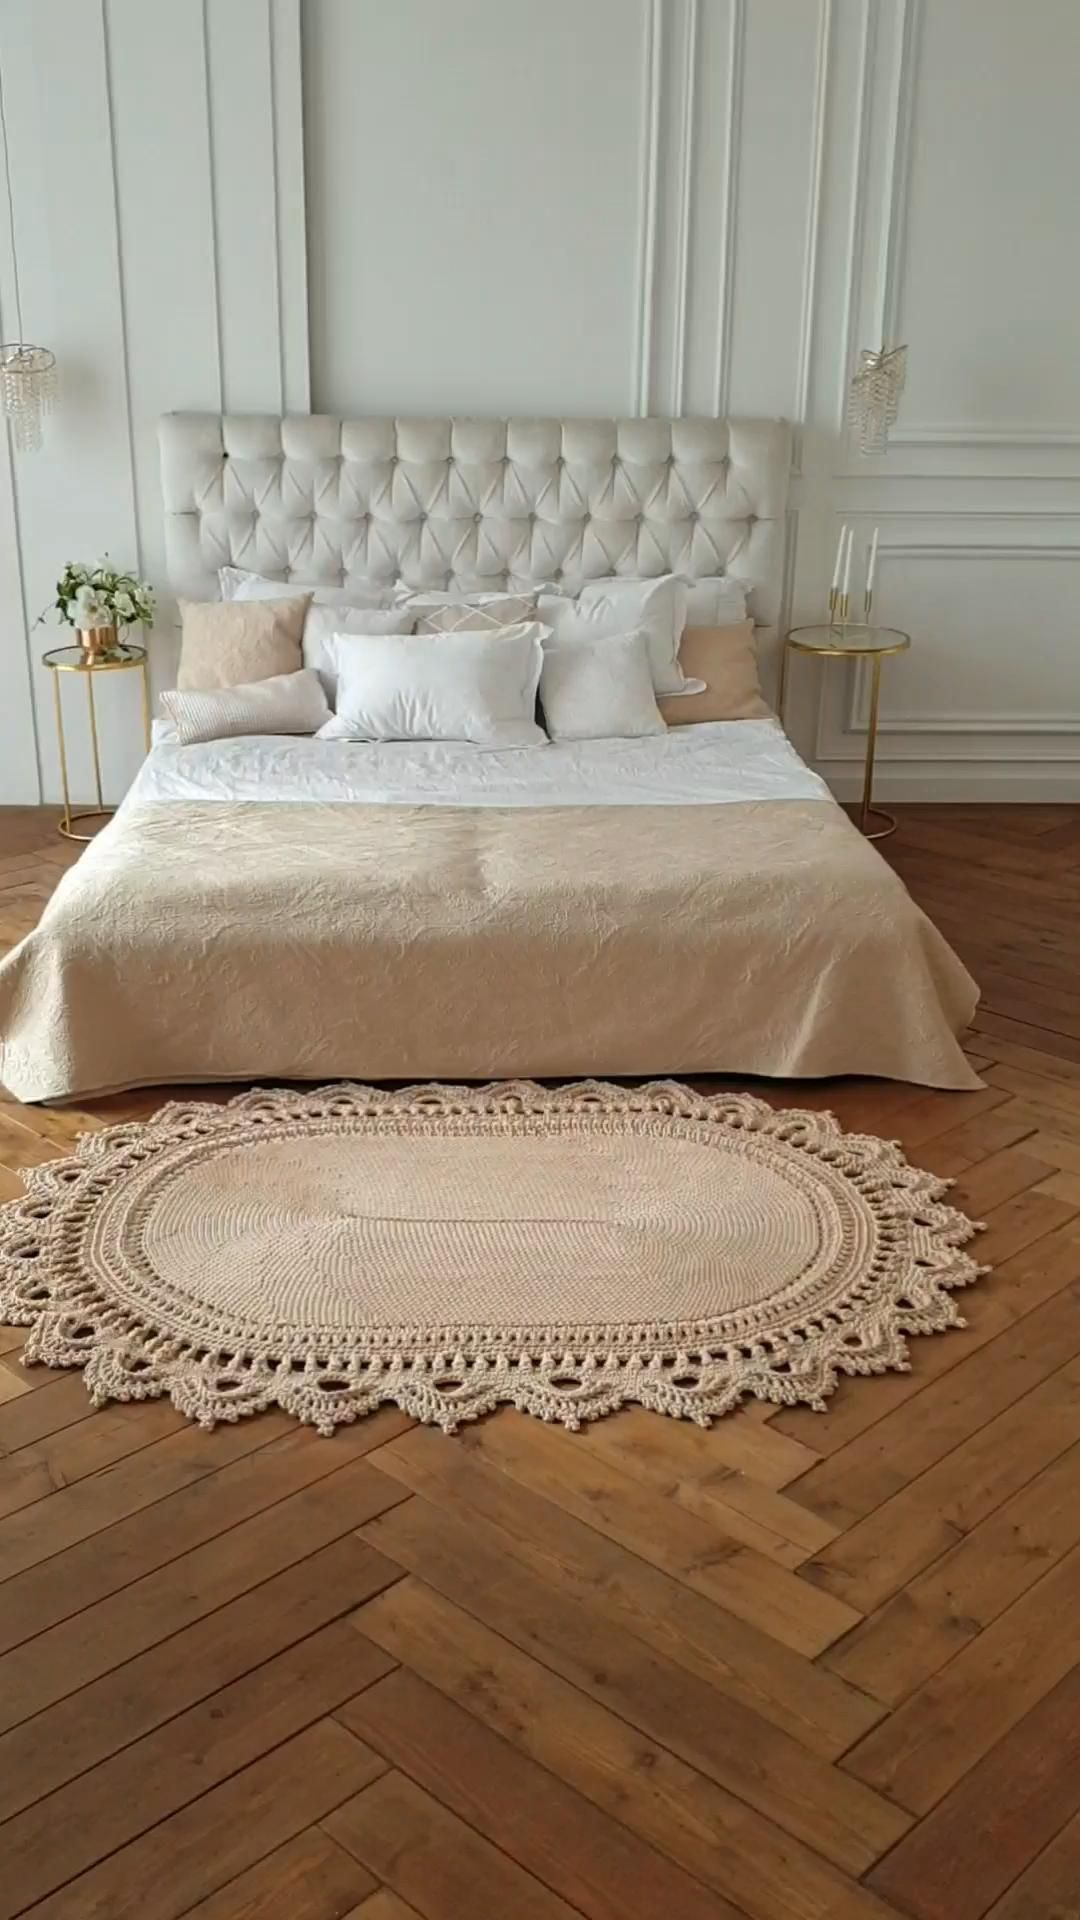 Cotton Lattice Area Rug Carpet Indoor Outdoor Rugs Woven Washable Rugs In 2020 Crochet Rug Crochet Rug Patterns Doily Rug